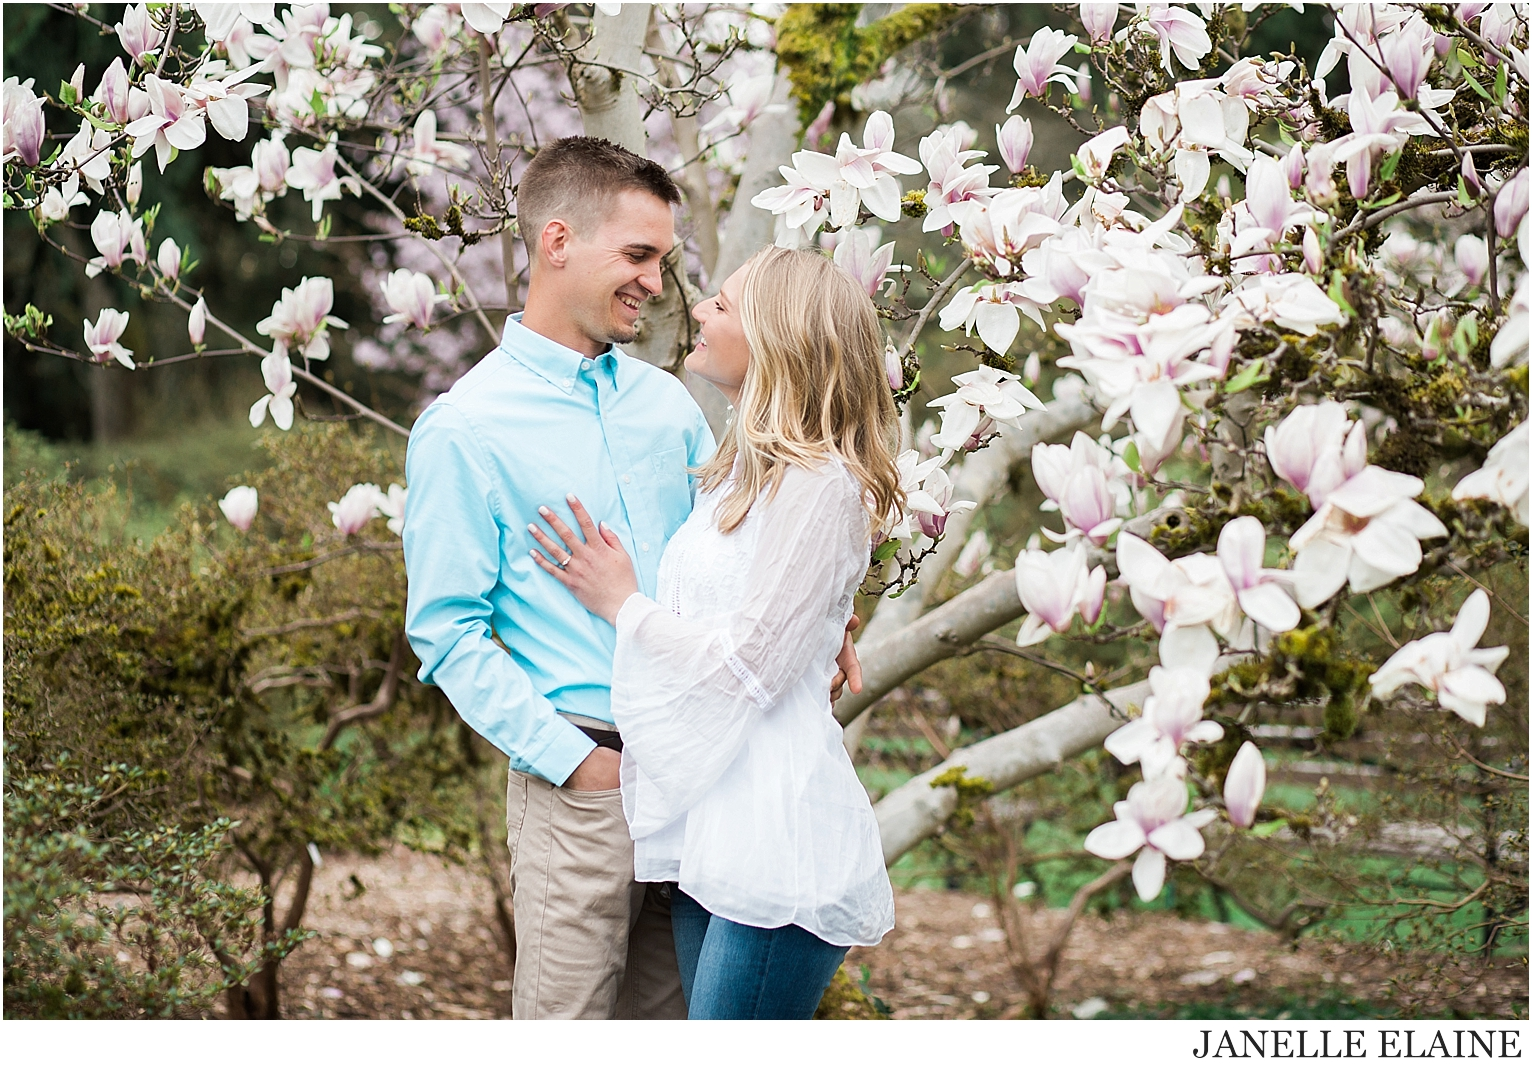 tricia and nate engagement photos-janelle elaine photography-150.jpg